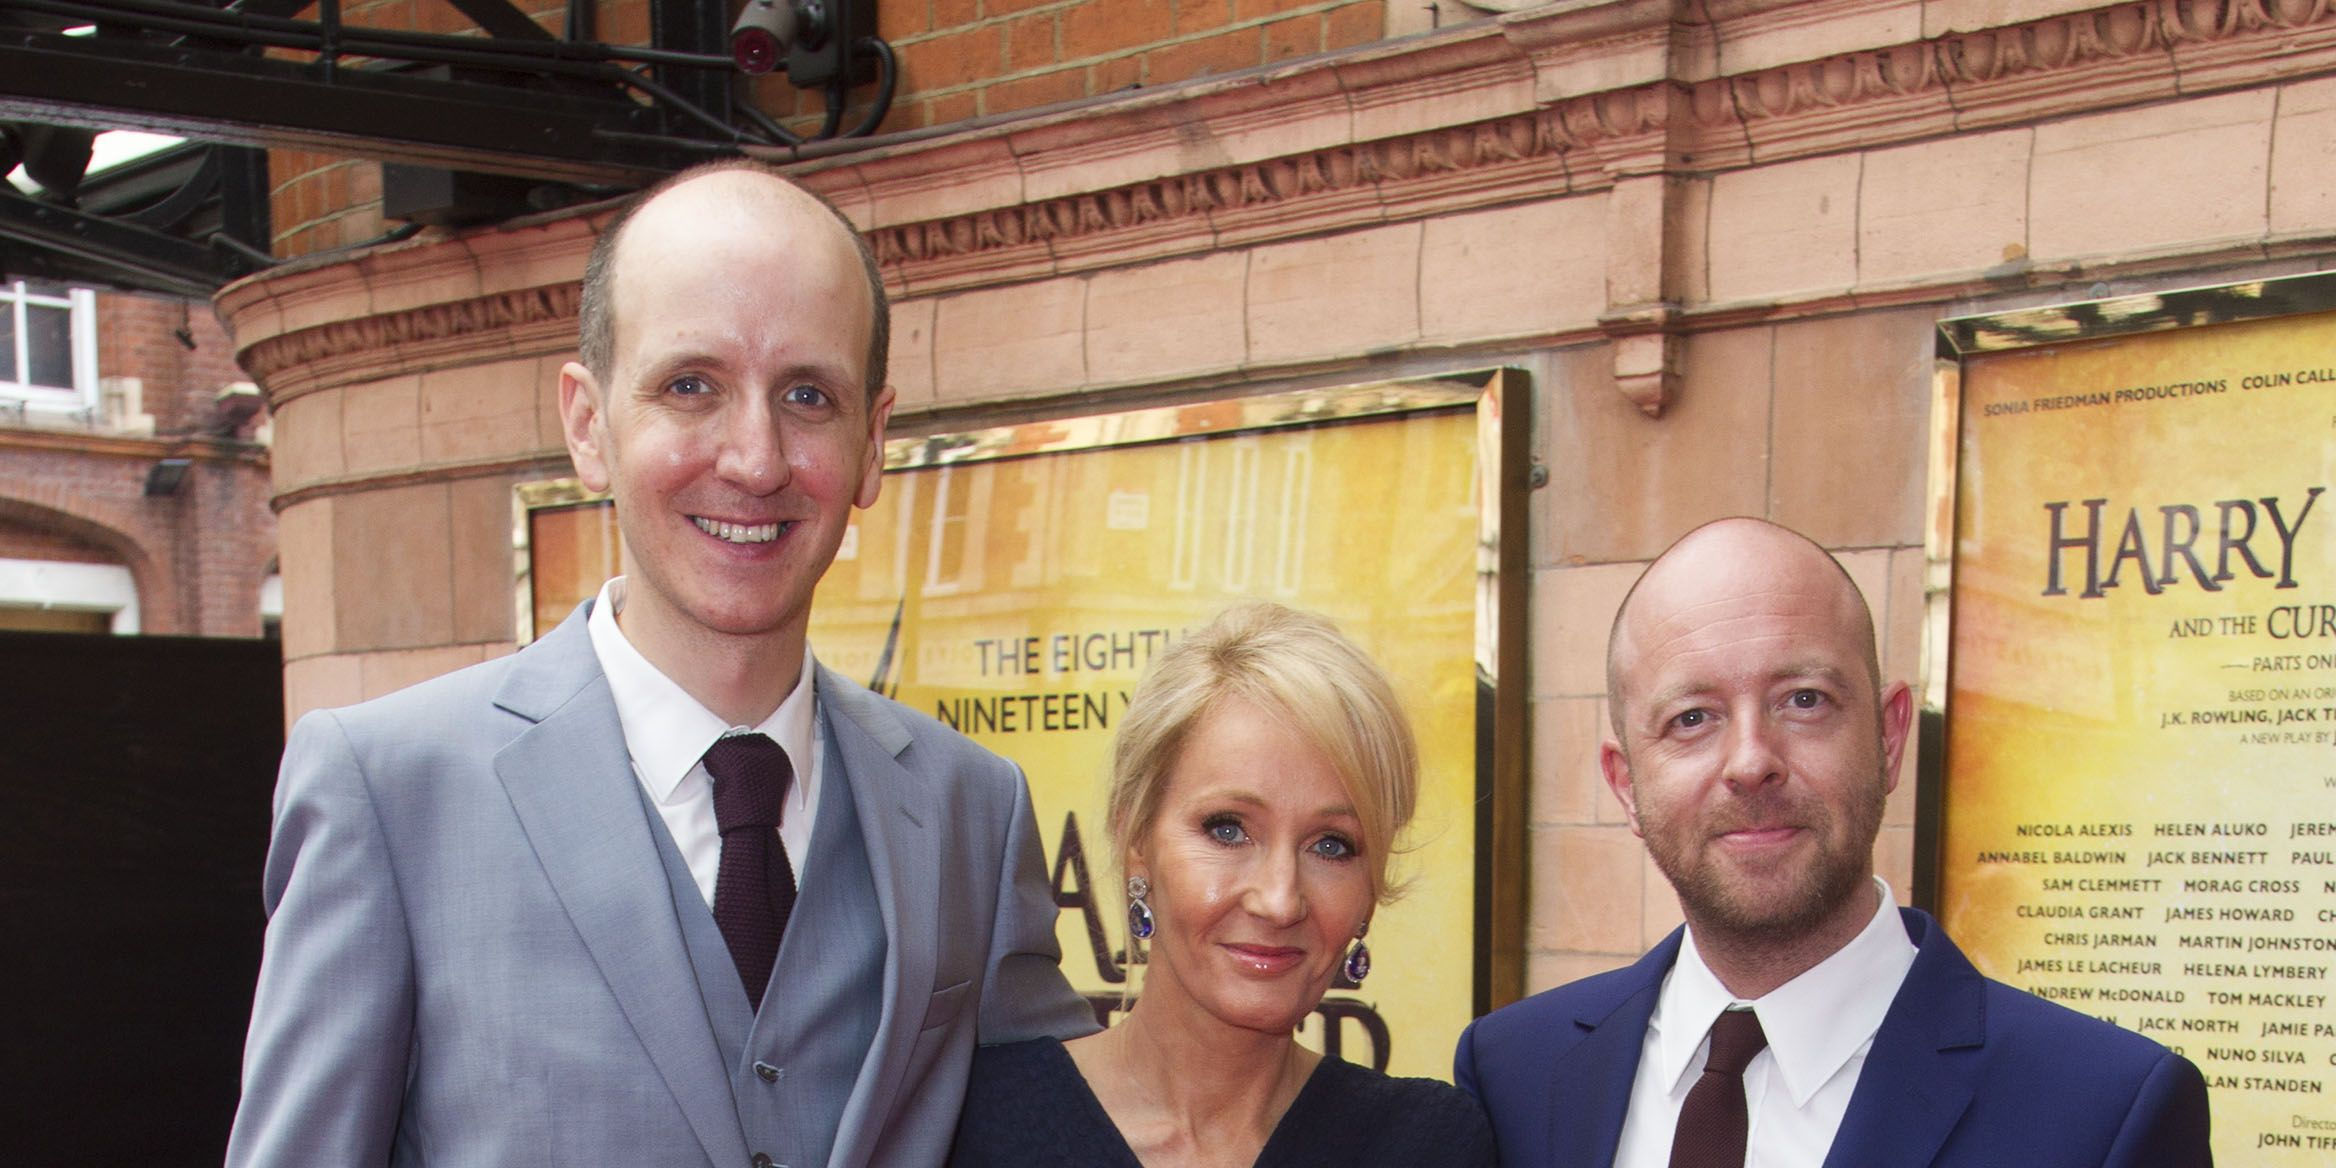 JK Rowling attends the opening gala for Harry Potter and the Cursed Child